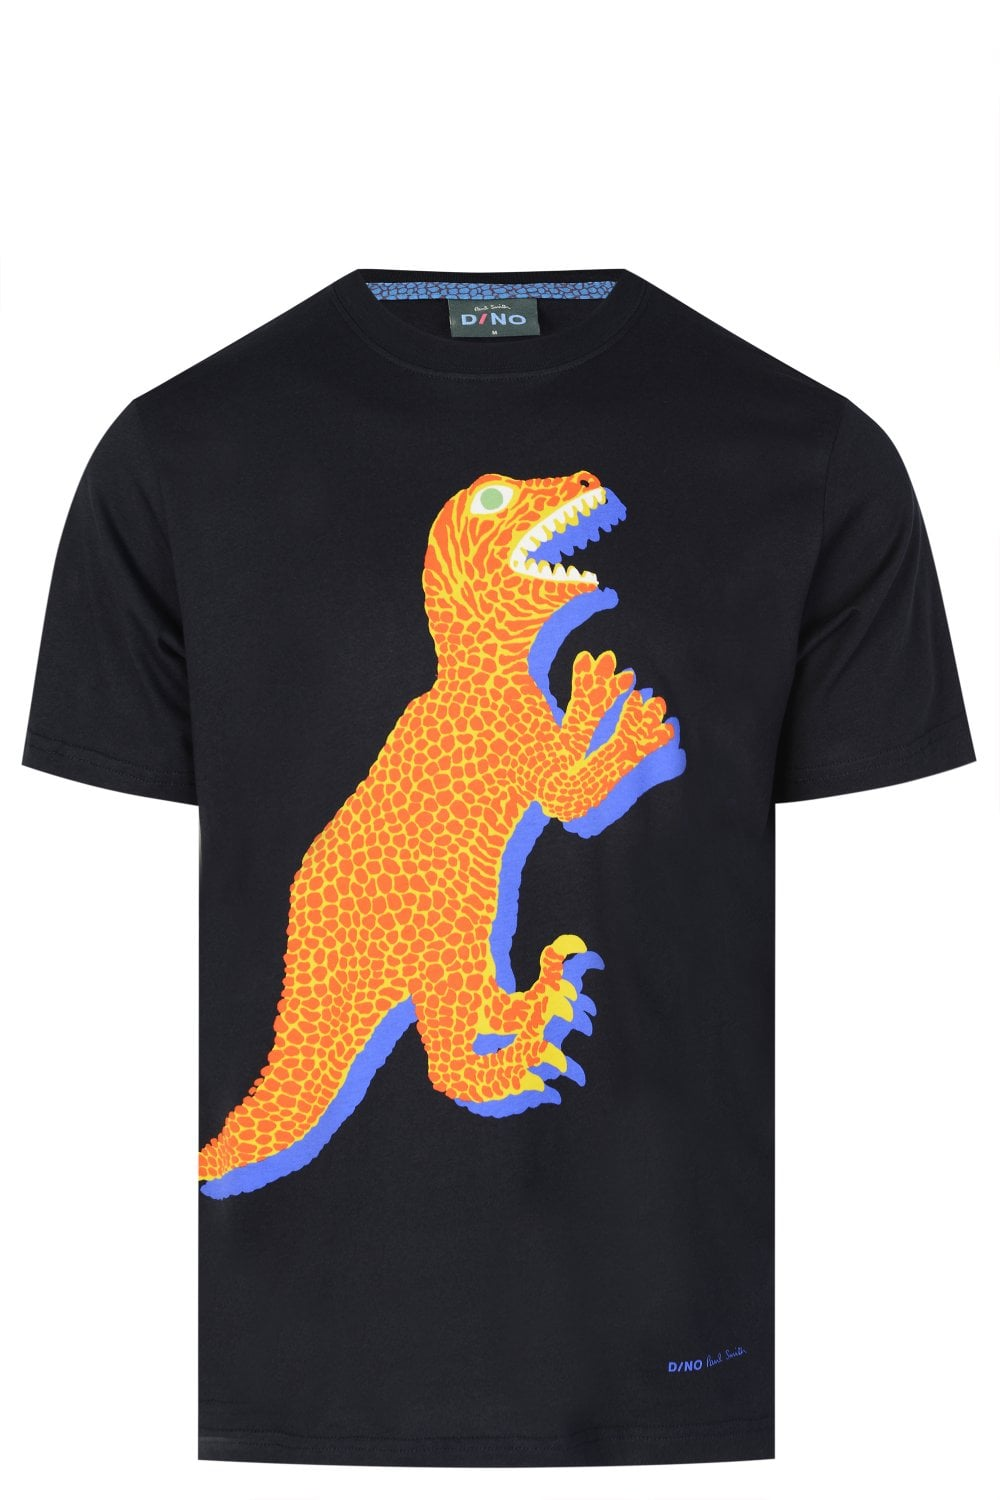 Paul Smith DINO T SHIRT